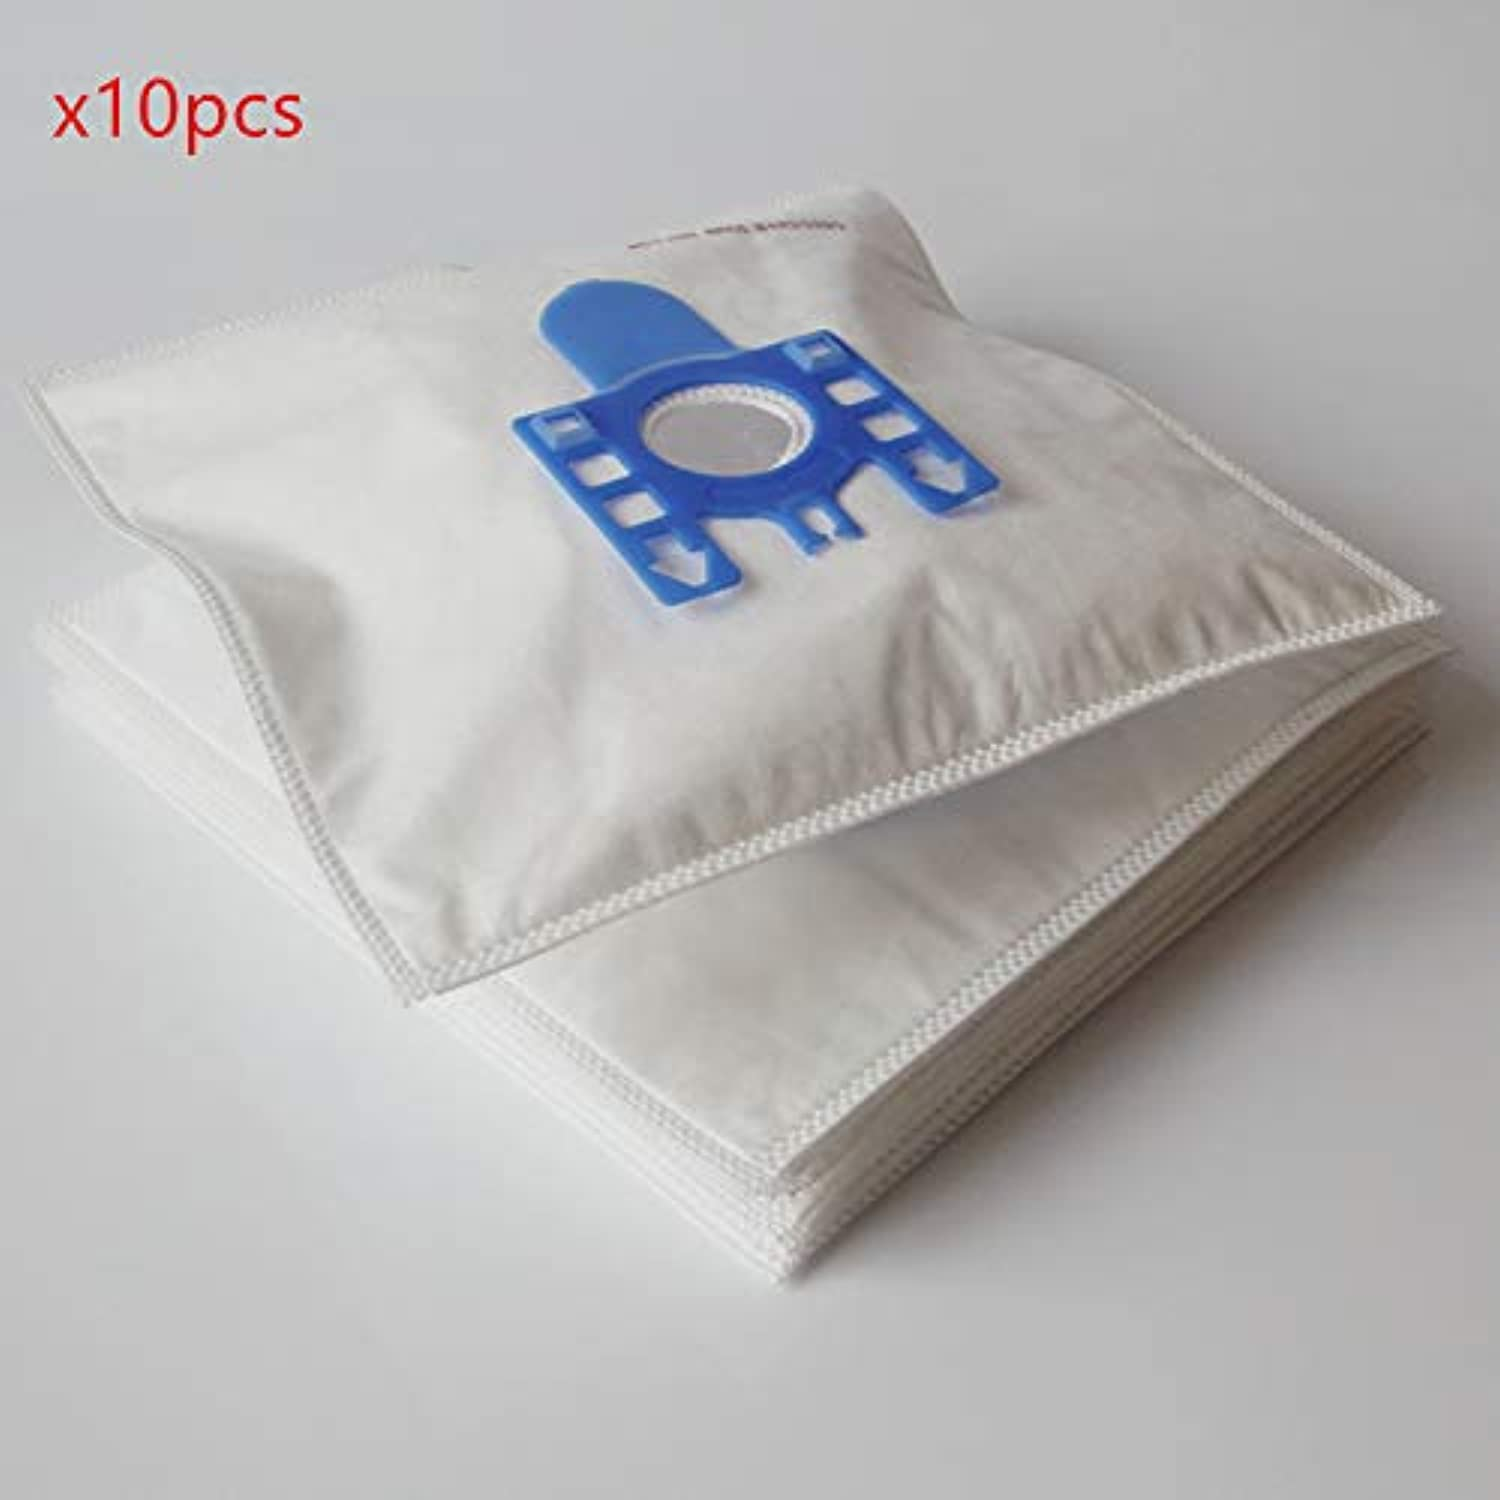 10Pcs/Lot DUST BAG For MIELE FJM Synthetic Type Hoover Hepa Vacuum Cleaner parts DUST BAGS replacement